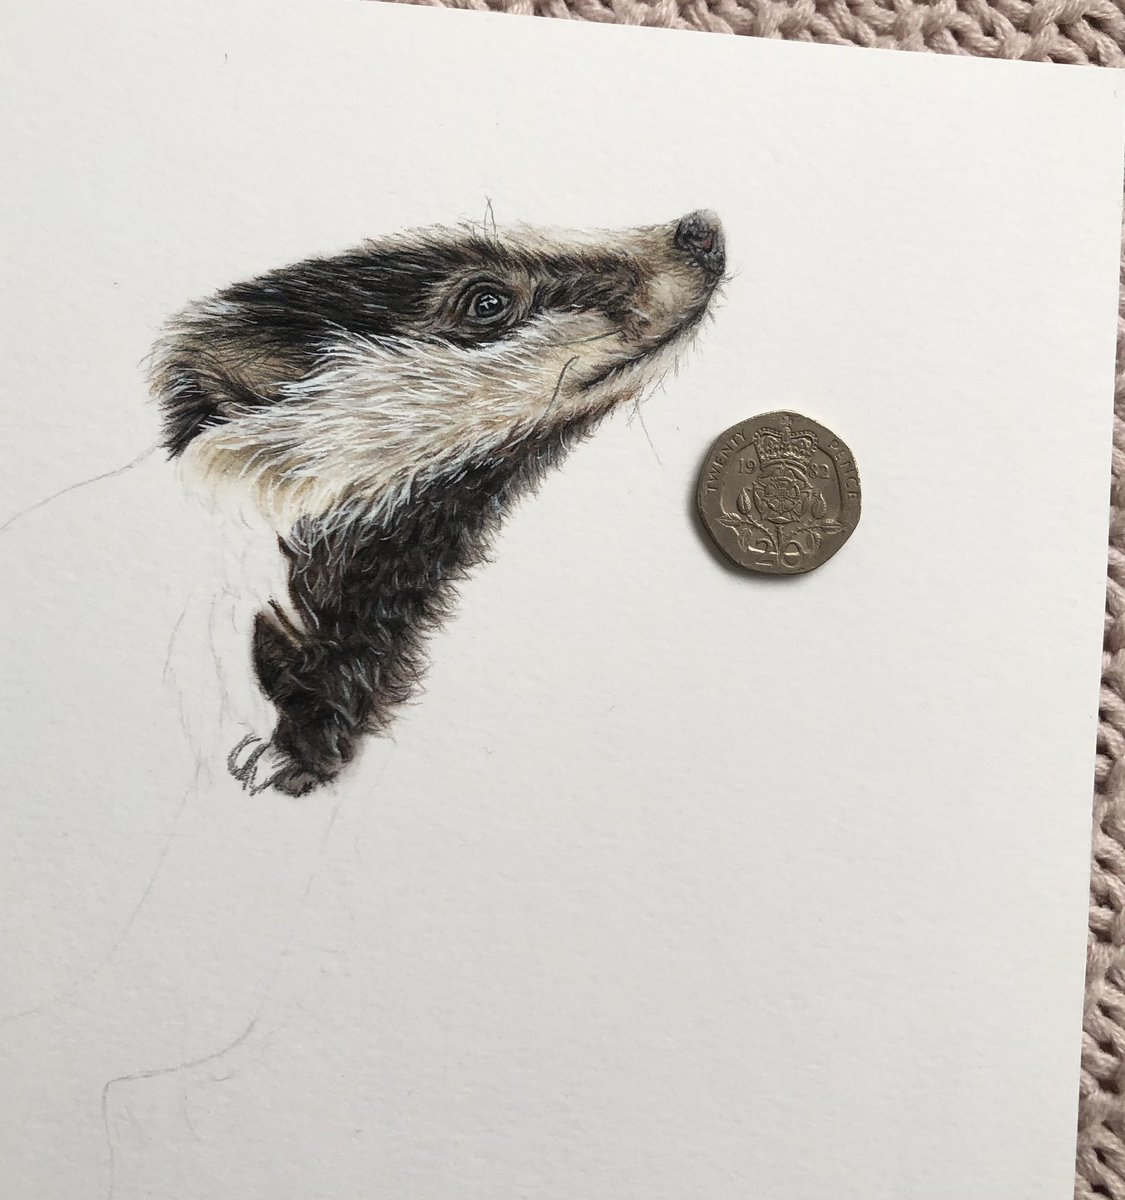 Aged 17, making some more progress on my badger drawing! here's a little size comparison next to a 20p coin 🥰 #wildlifedrawing #wildlifeart #animalart @BadgerTrust #badger @BBCSpringwatch @ChrisGPackham @swlanaturaleye